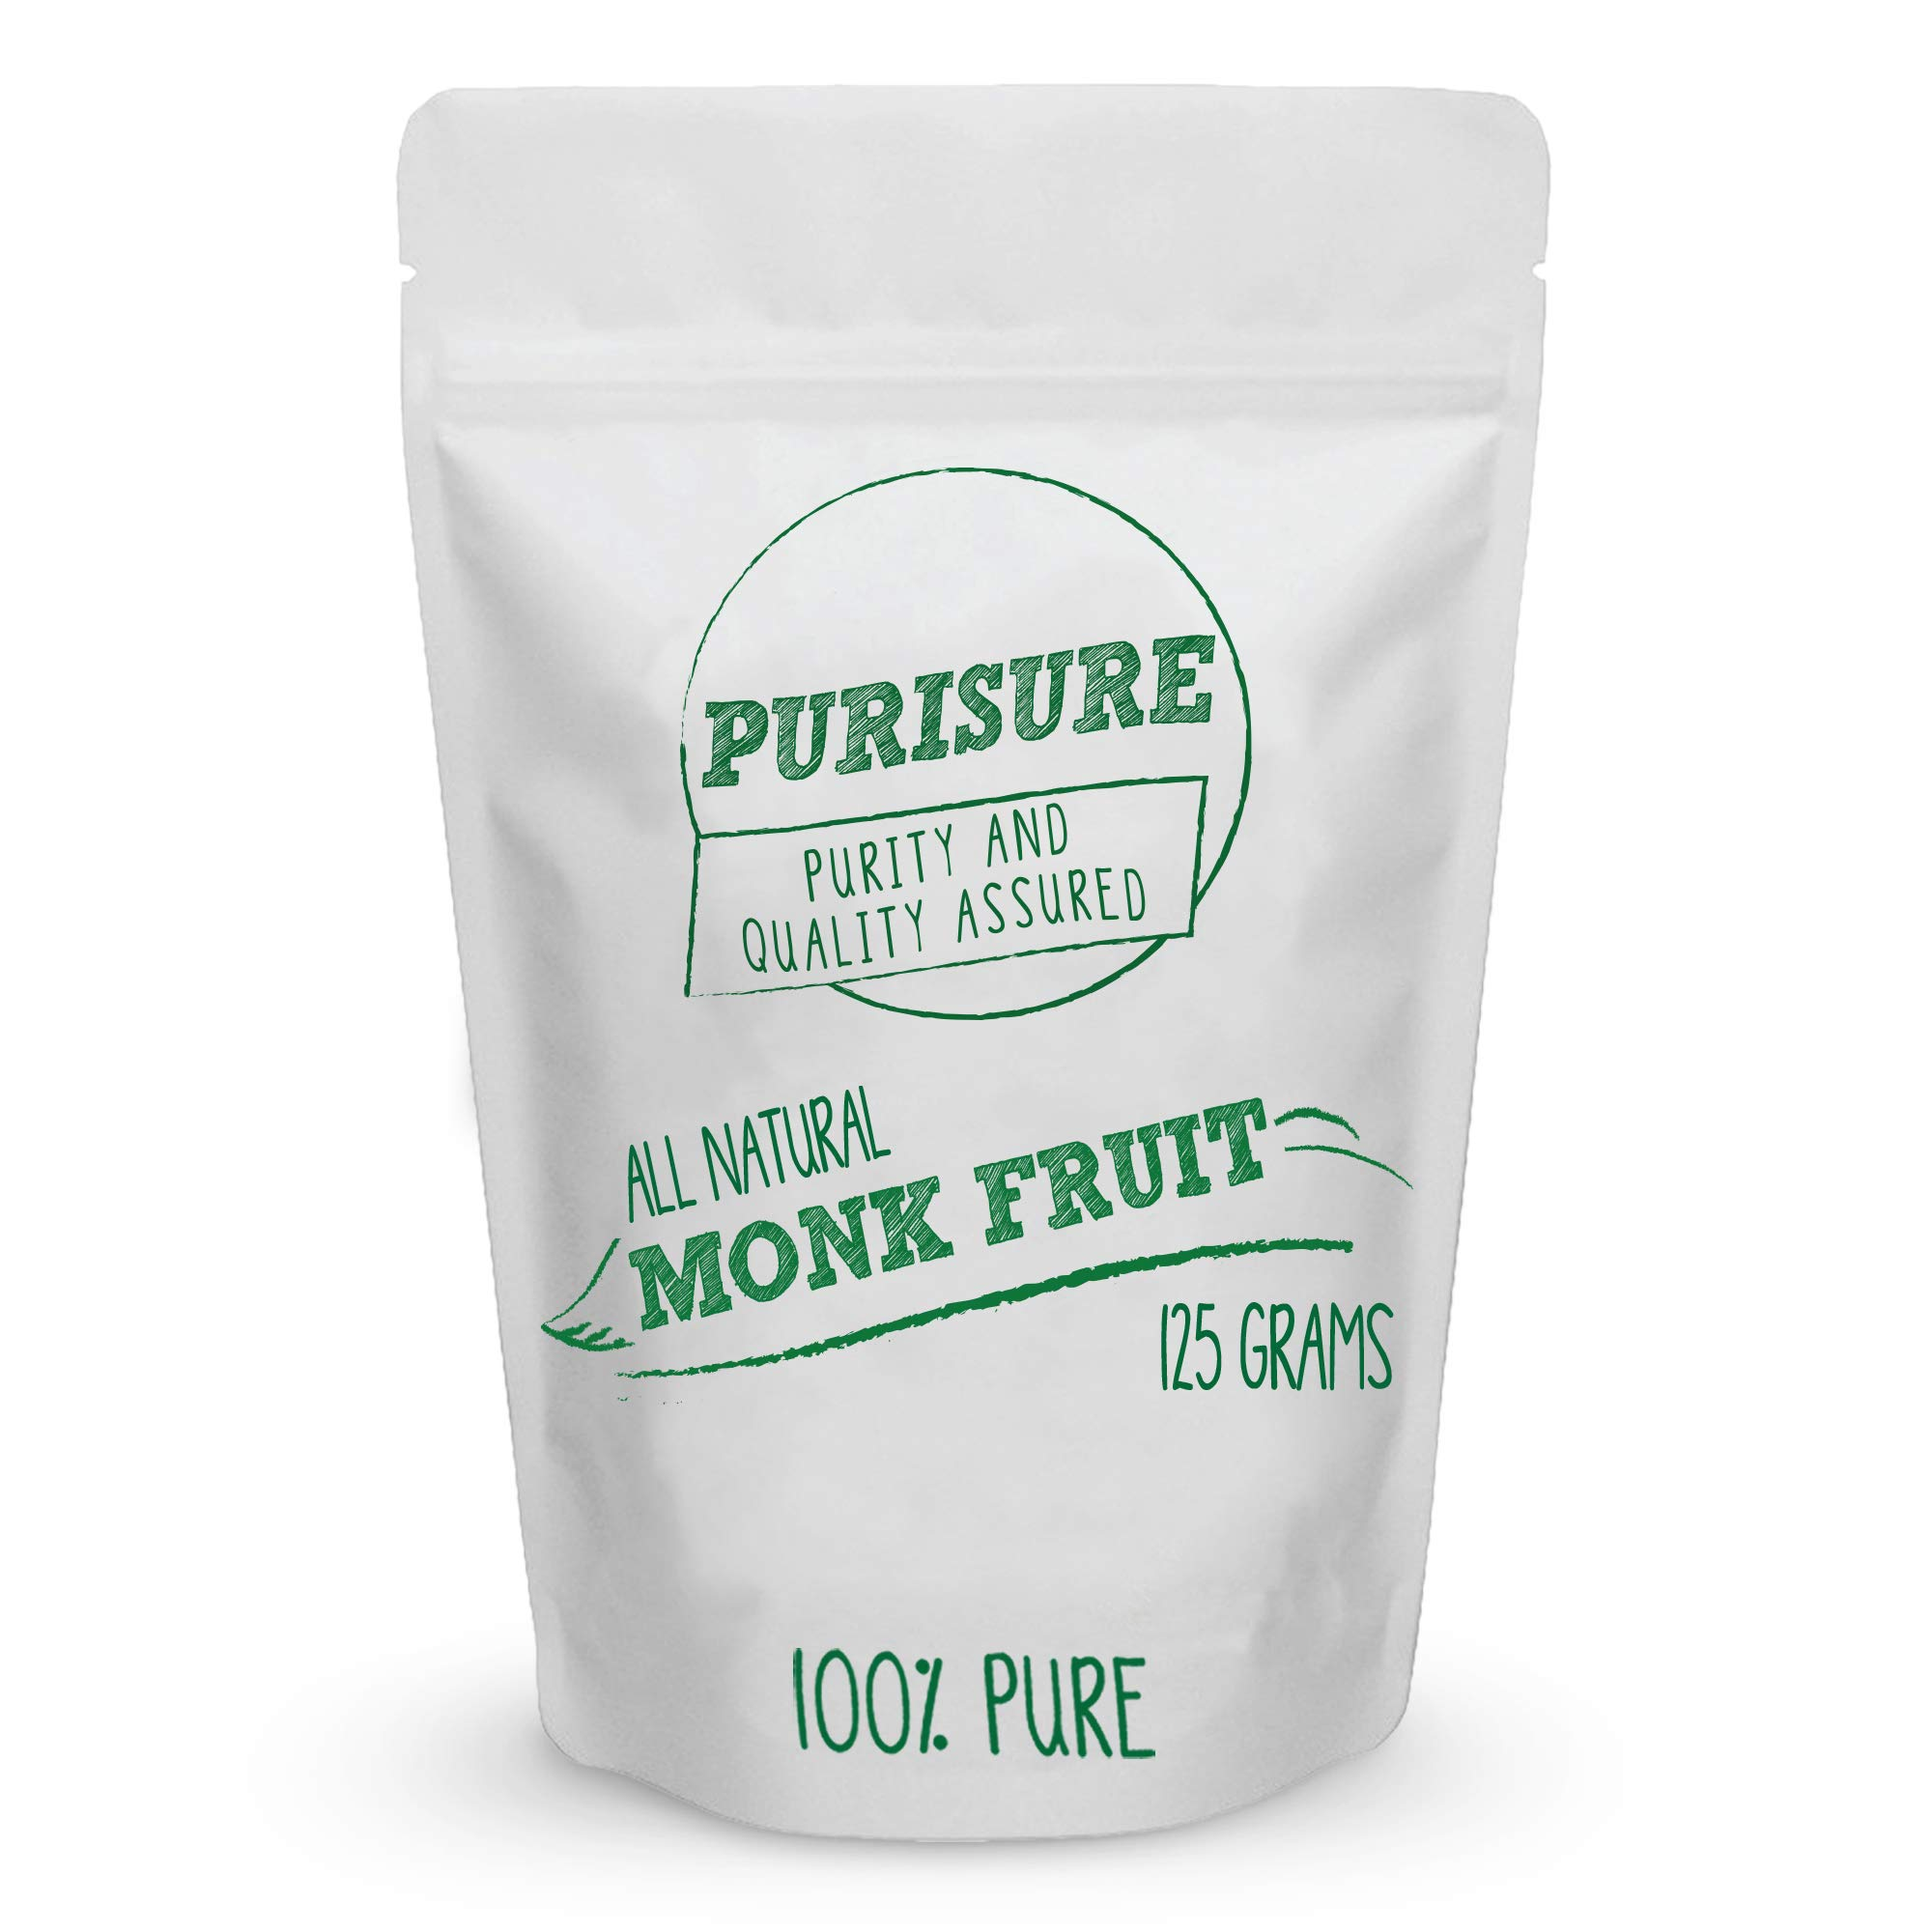 Purisure Monk Fruit Extract 125g (400 Servings) | Sugar-Free Natural Sweetener | Zero-Calorie Zero-Carb Sugar Substitute | No Artificial Sweeteners | Perfect for Low-Sugar, Low-Carb, Keto, Paleo Diets